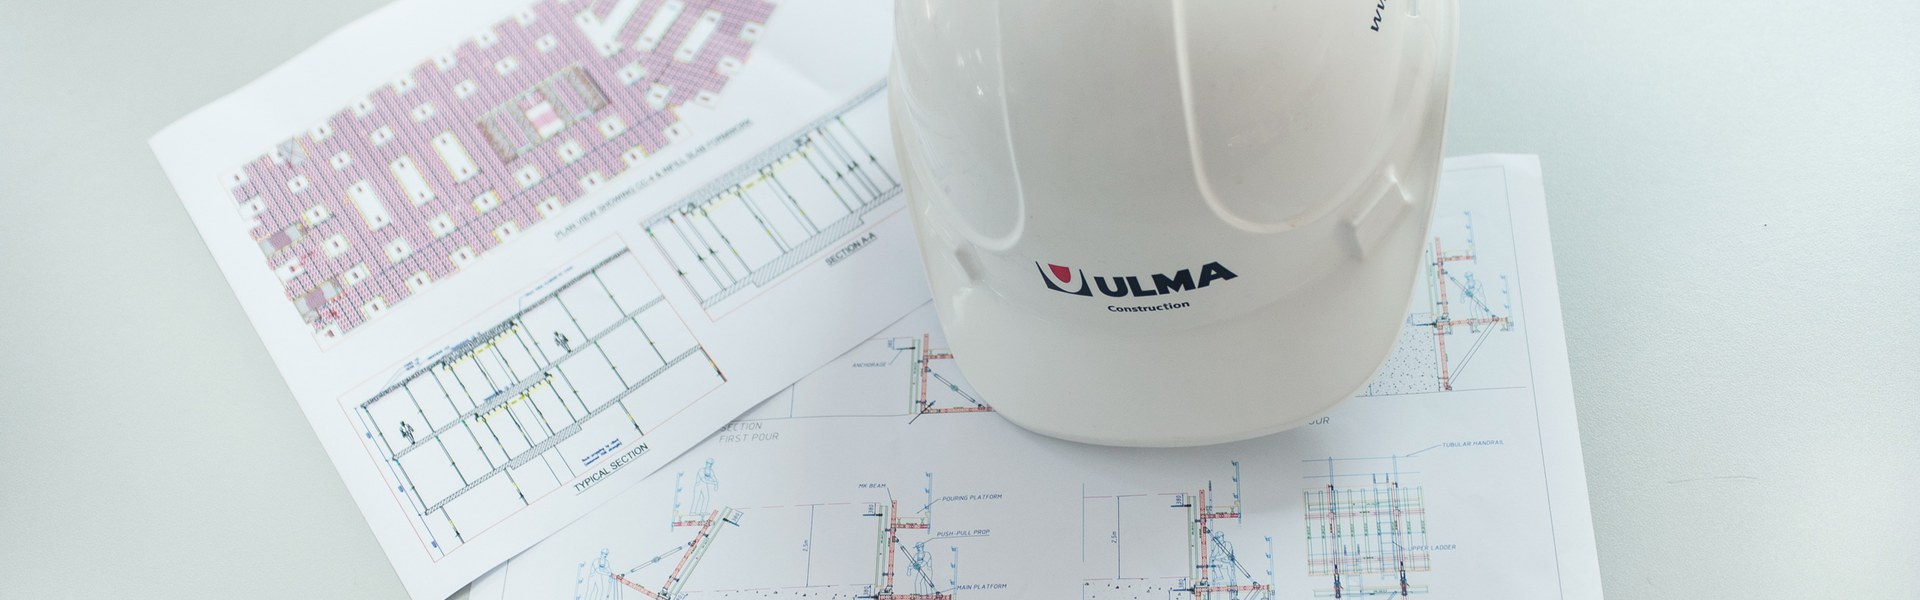 Video Institucional - ULMA Construction